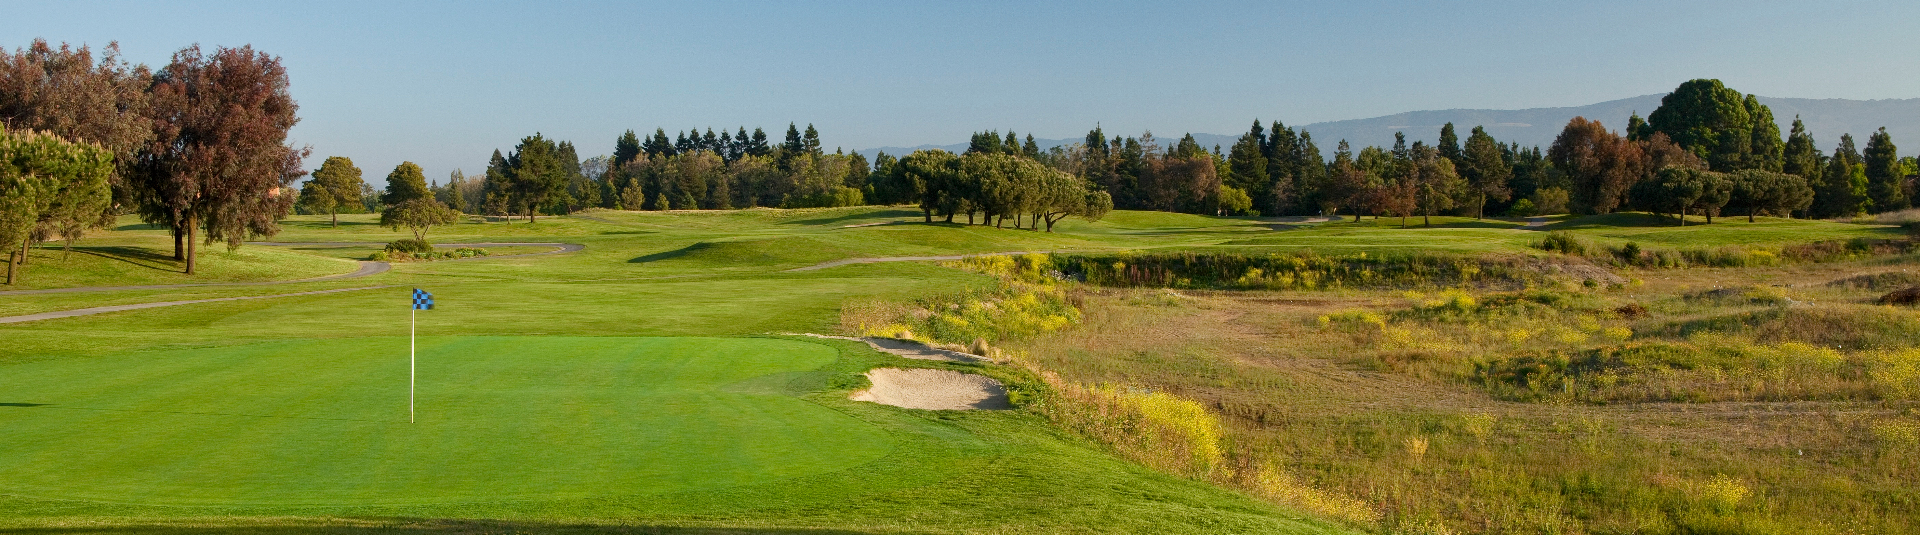 Shoreline Golf Links features a breathtaking view of the San Francisco Bay